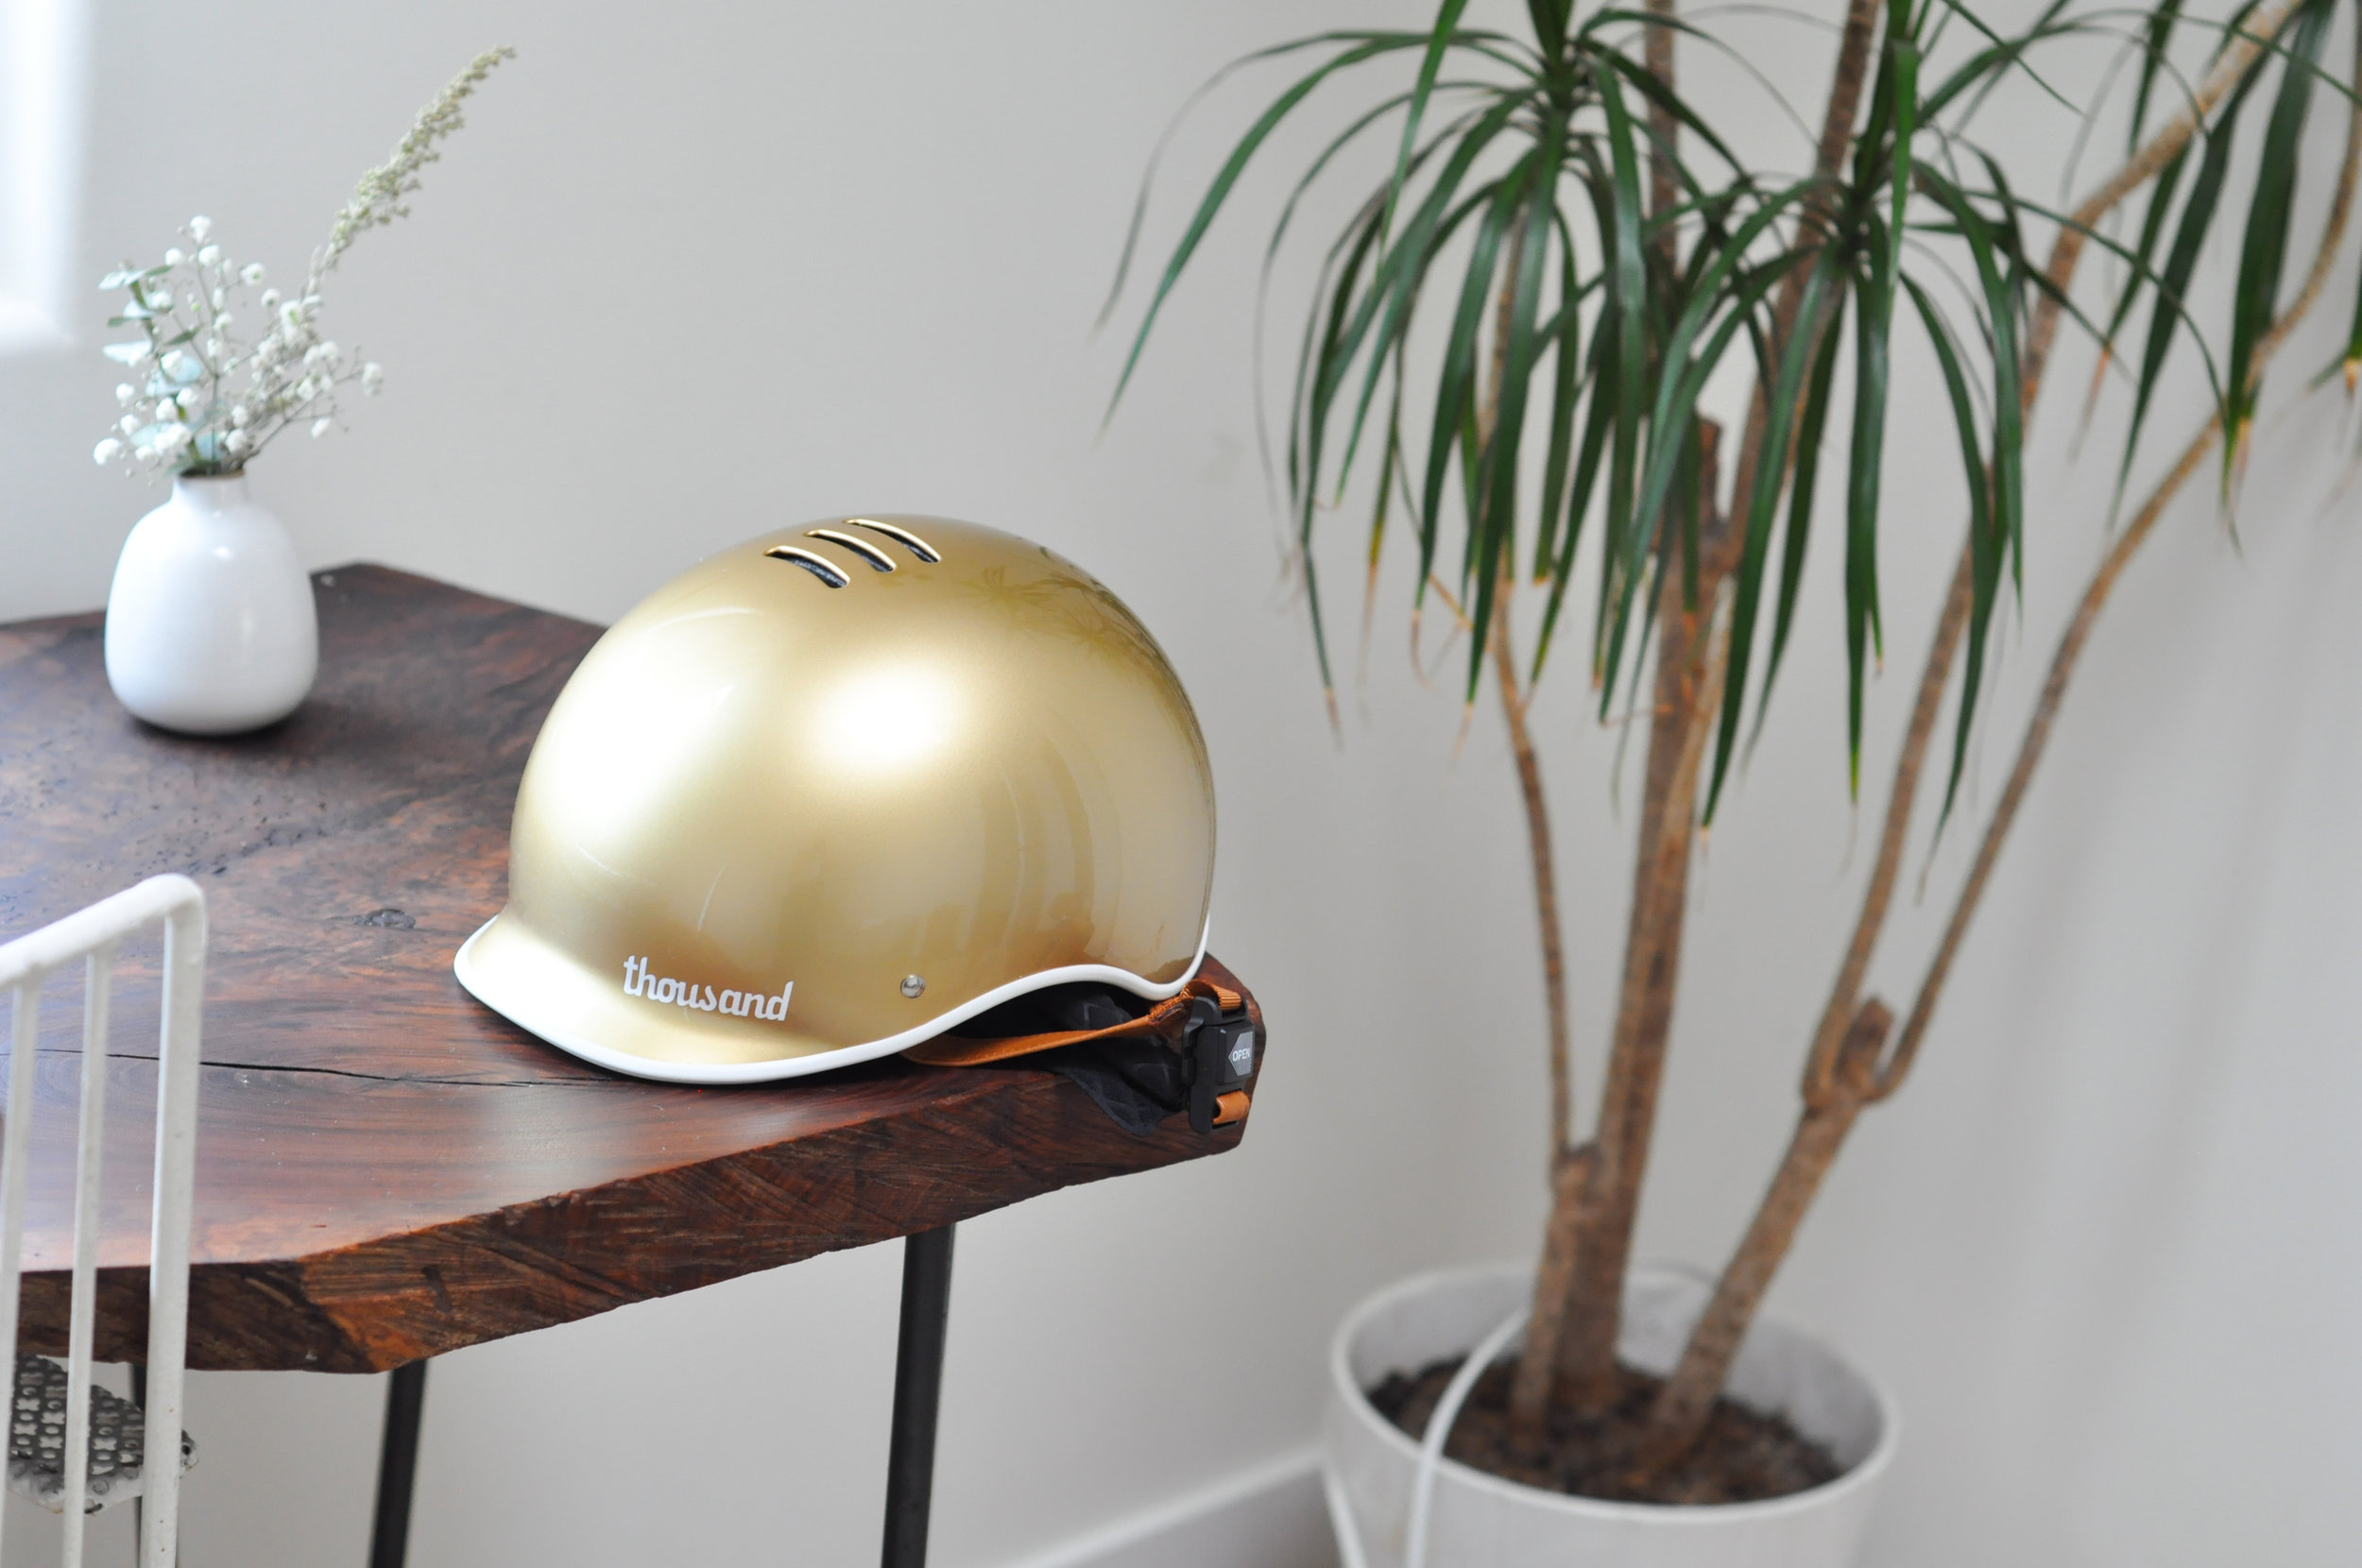 free-and-native-Thousand Bike Helmet